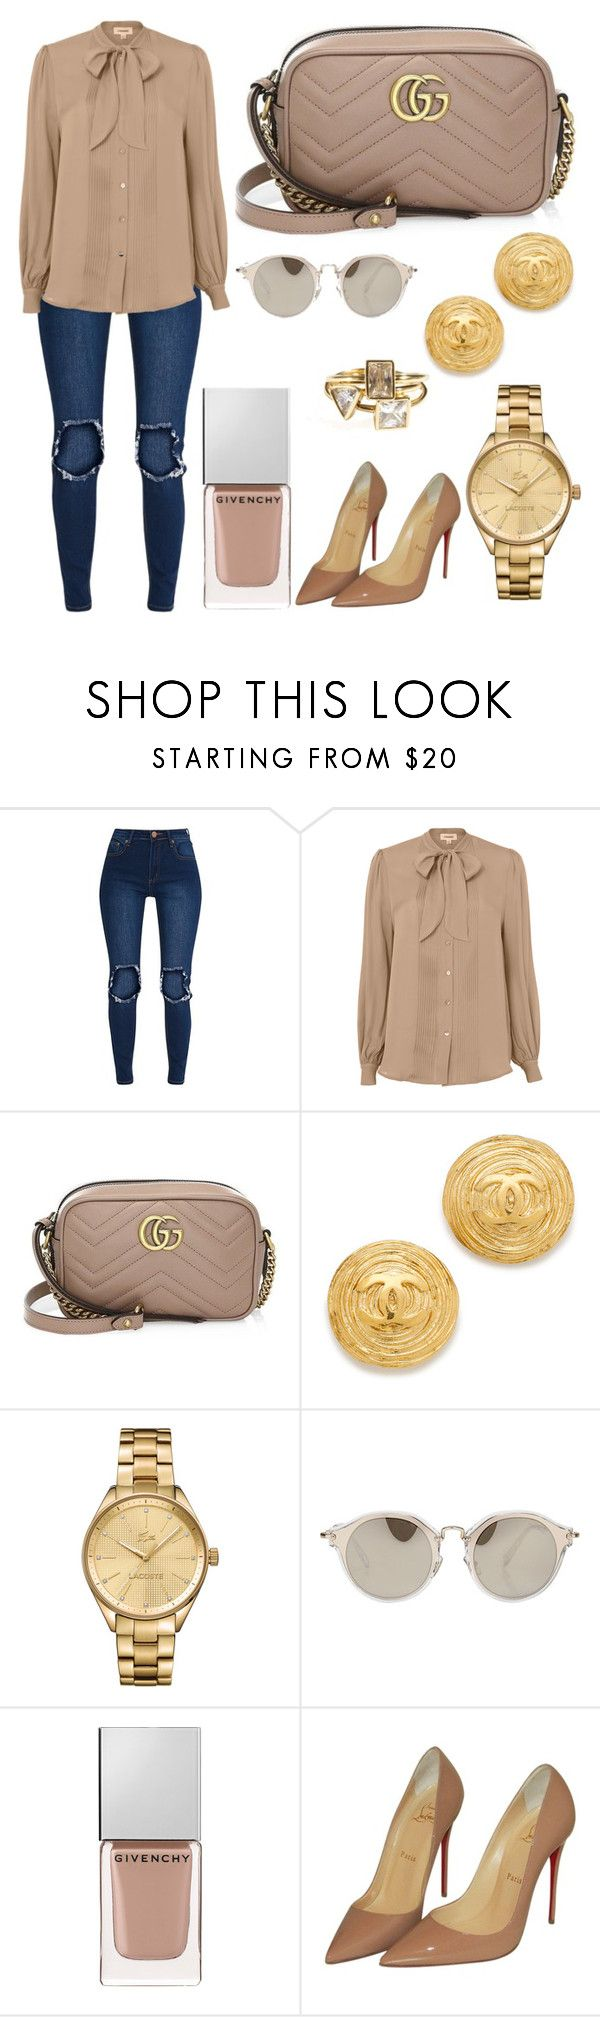 """""""Untitled #9887"""" by tatyanaoliveiratatiana ❤ liked on Polyvore featuring L'Agence, Gucci, Lacoste, Miu Miu, Givenchy and Christian Louboutin"""